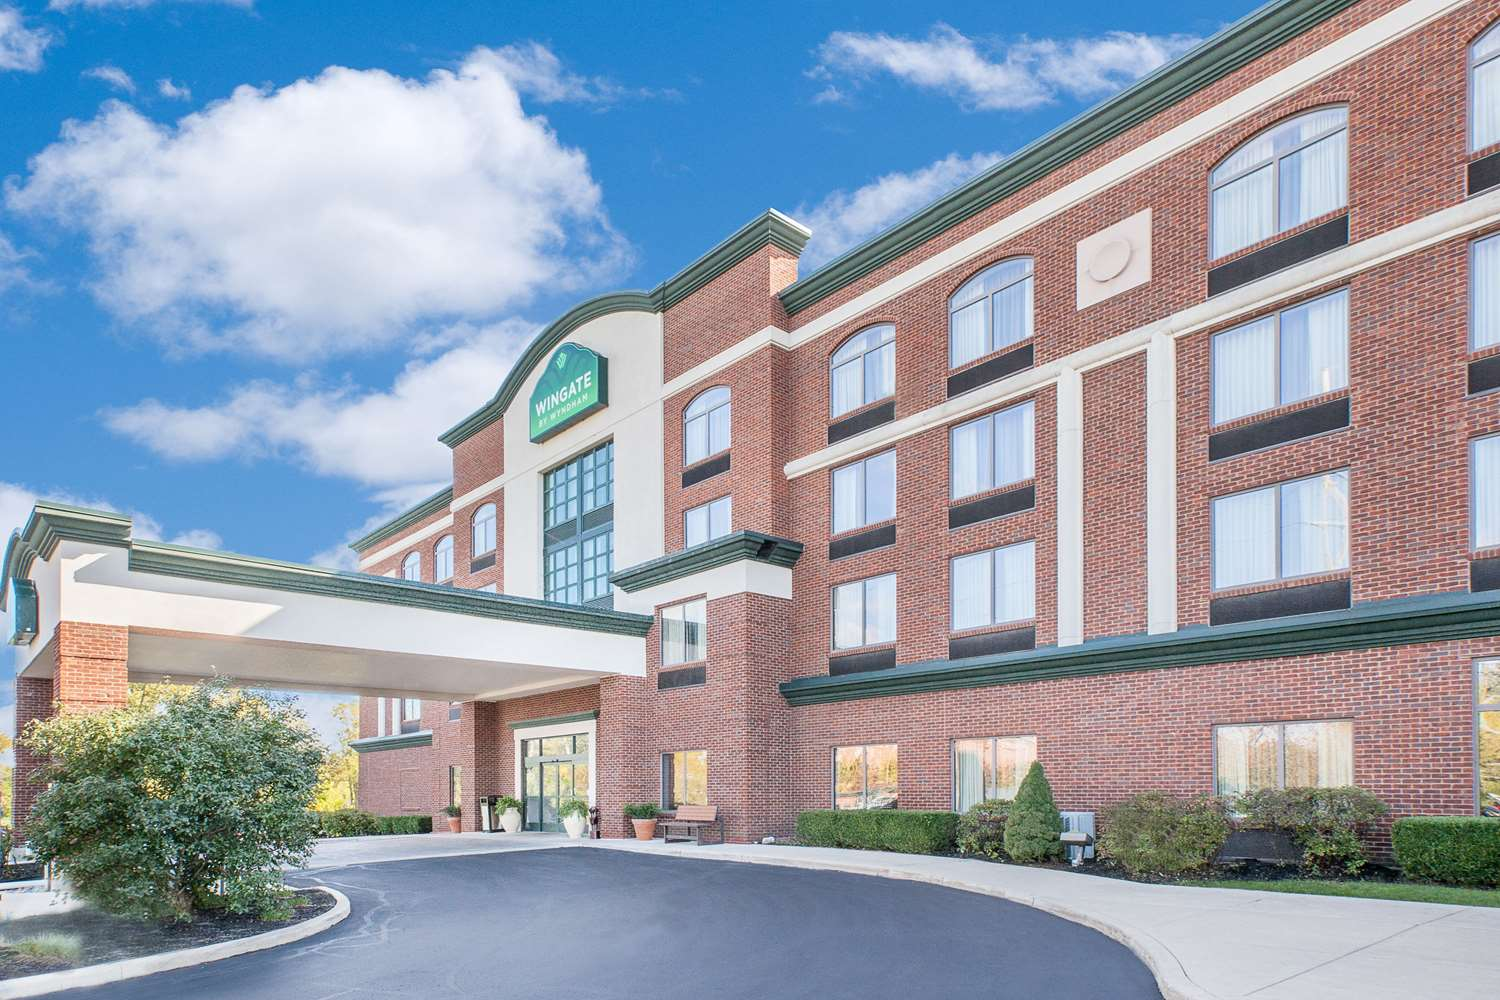 Exterior View Wingate By Wyndham Hotel Sylvania